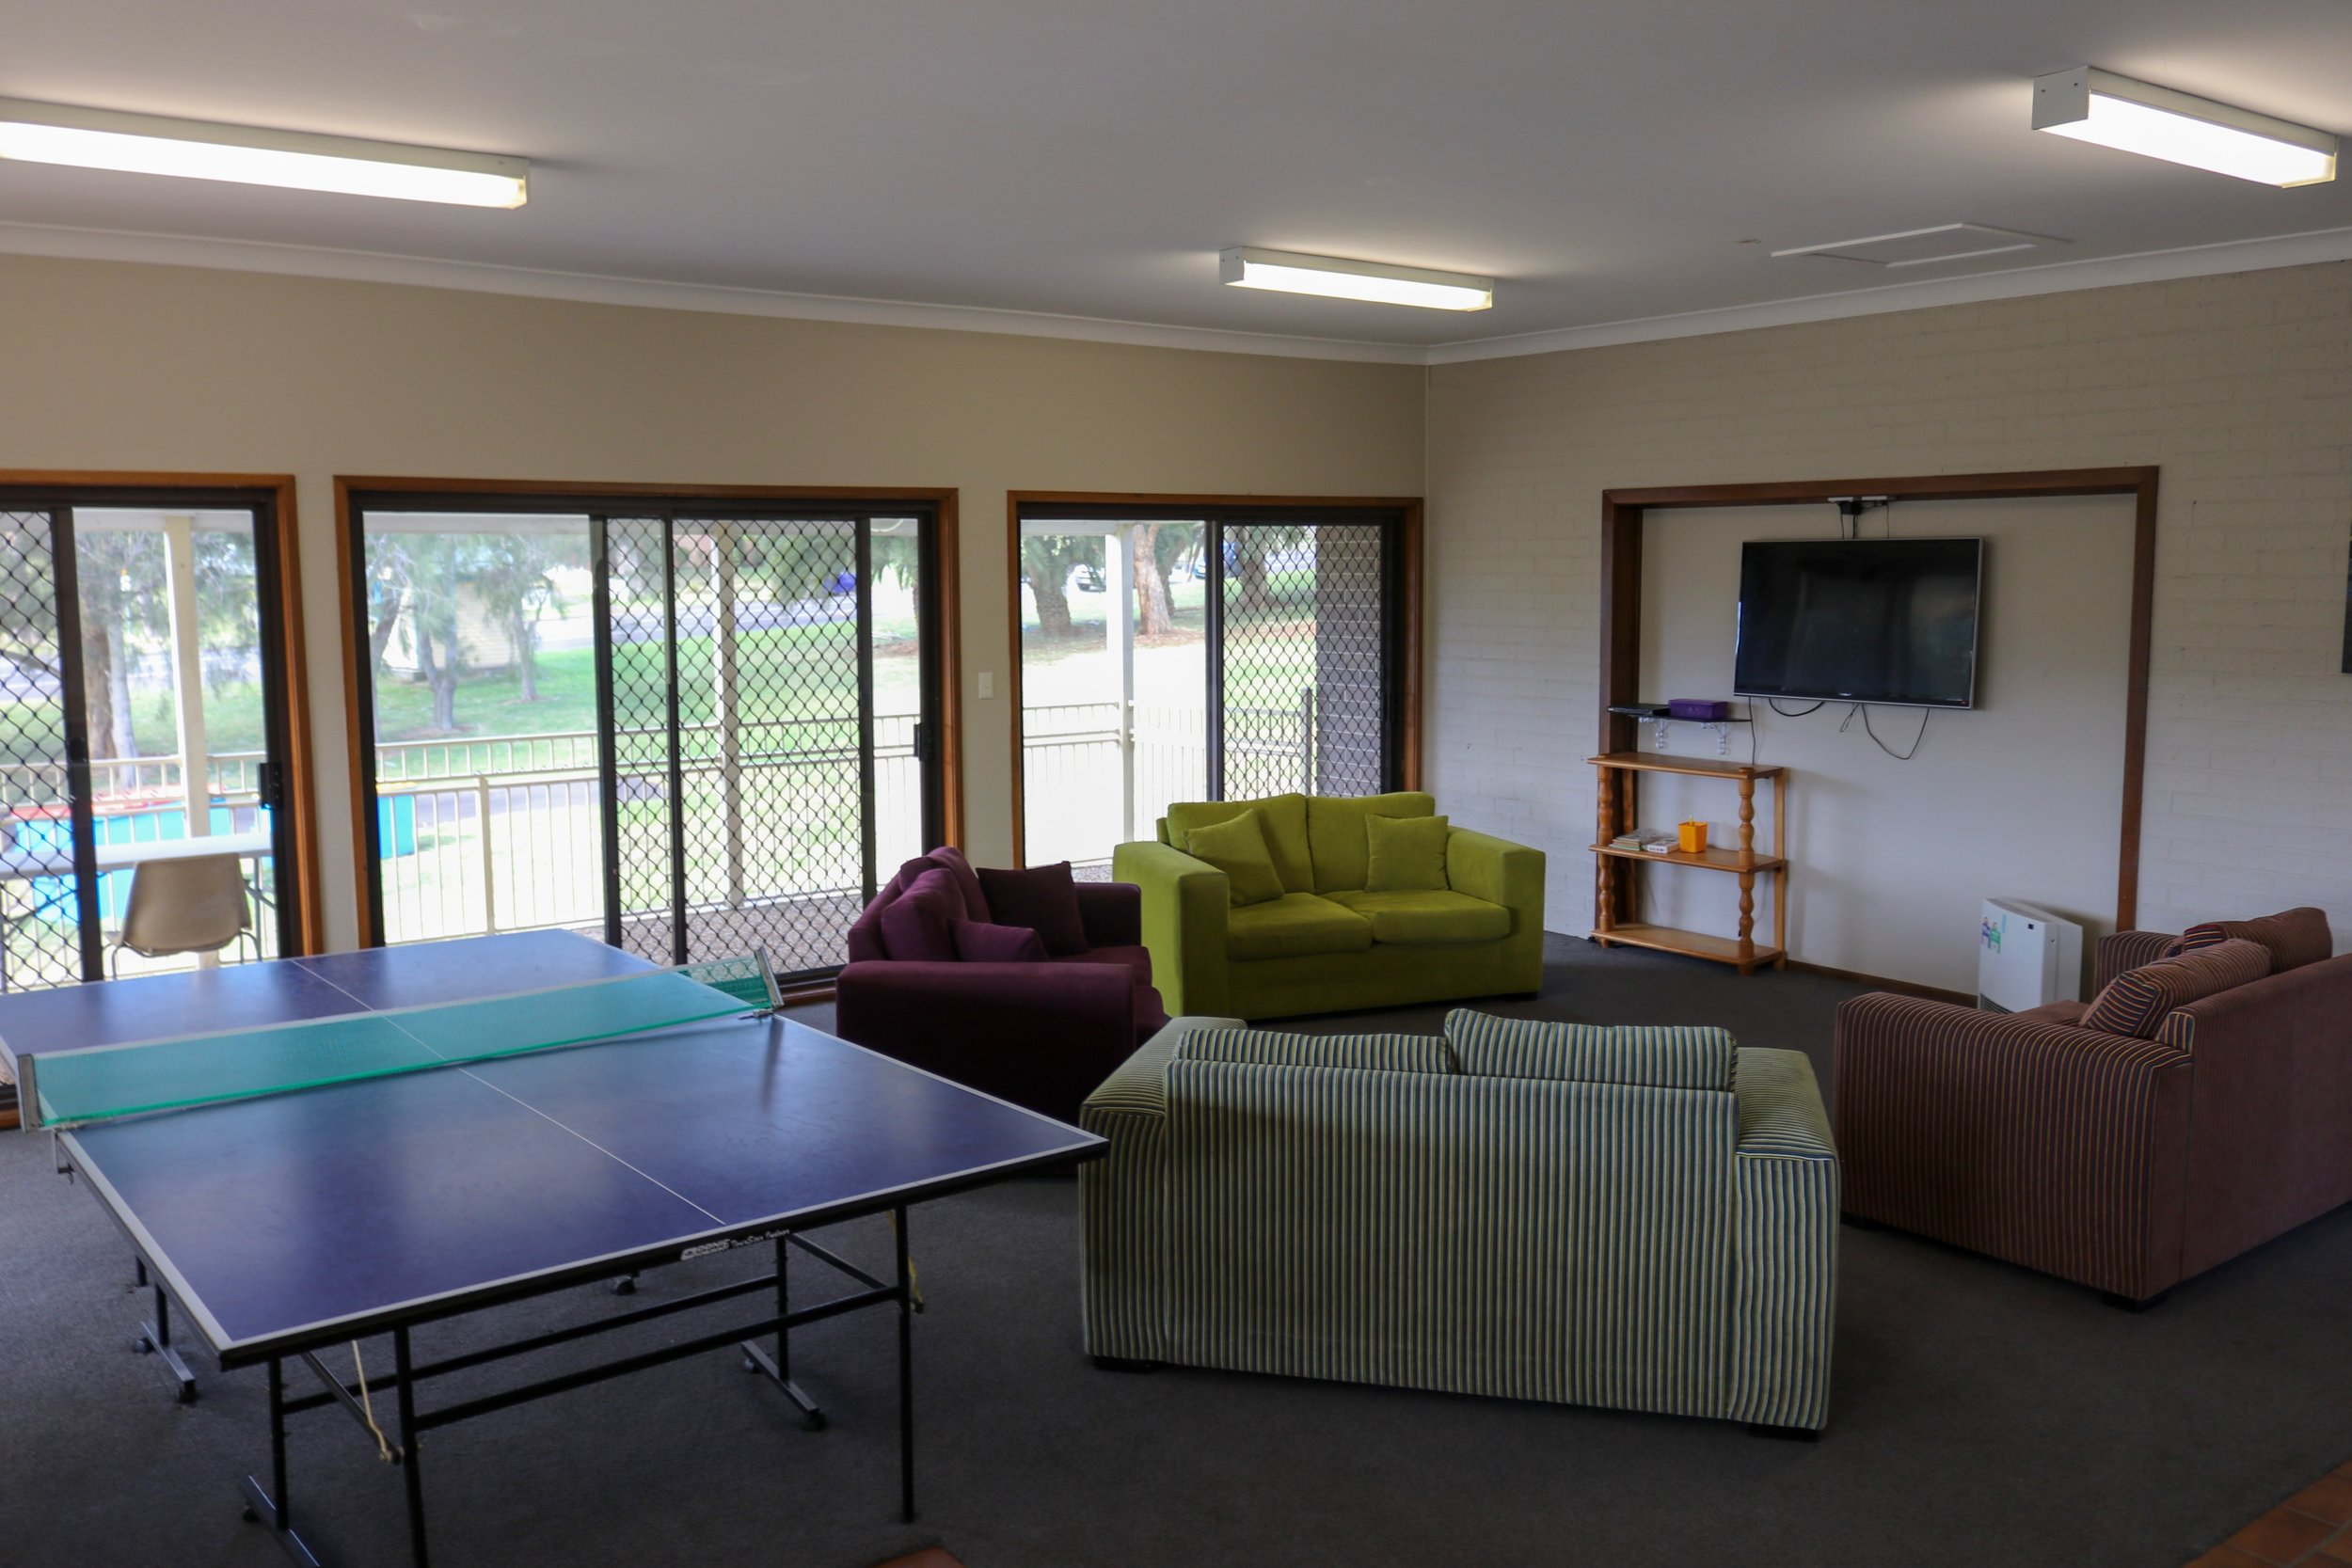 Ping pong table and TV